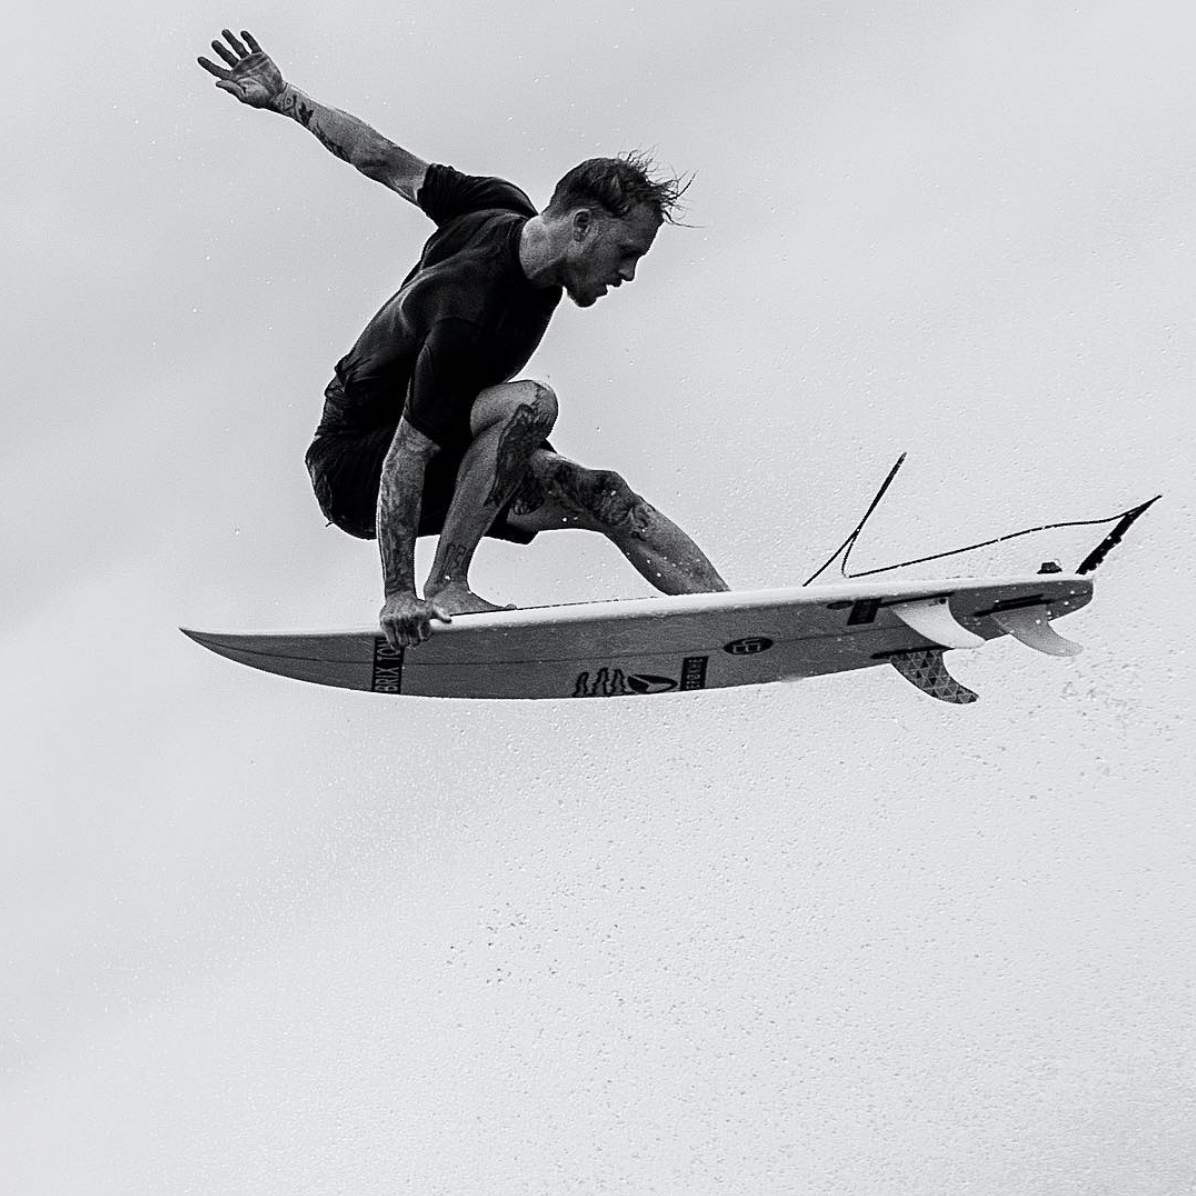 83a8f65fd4 Blog - CHIPPA WILSON'S NEW PART — Wasted Talent Magazine